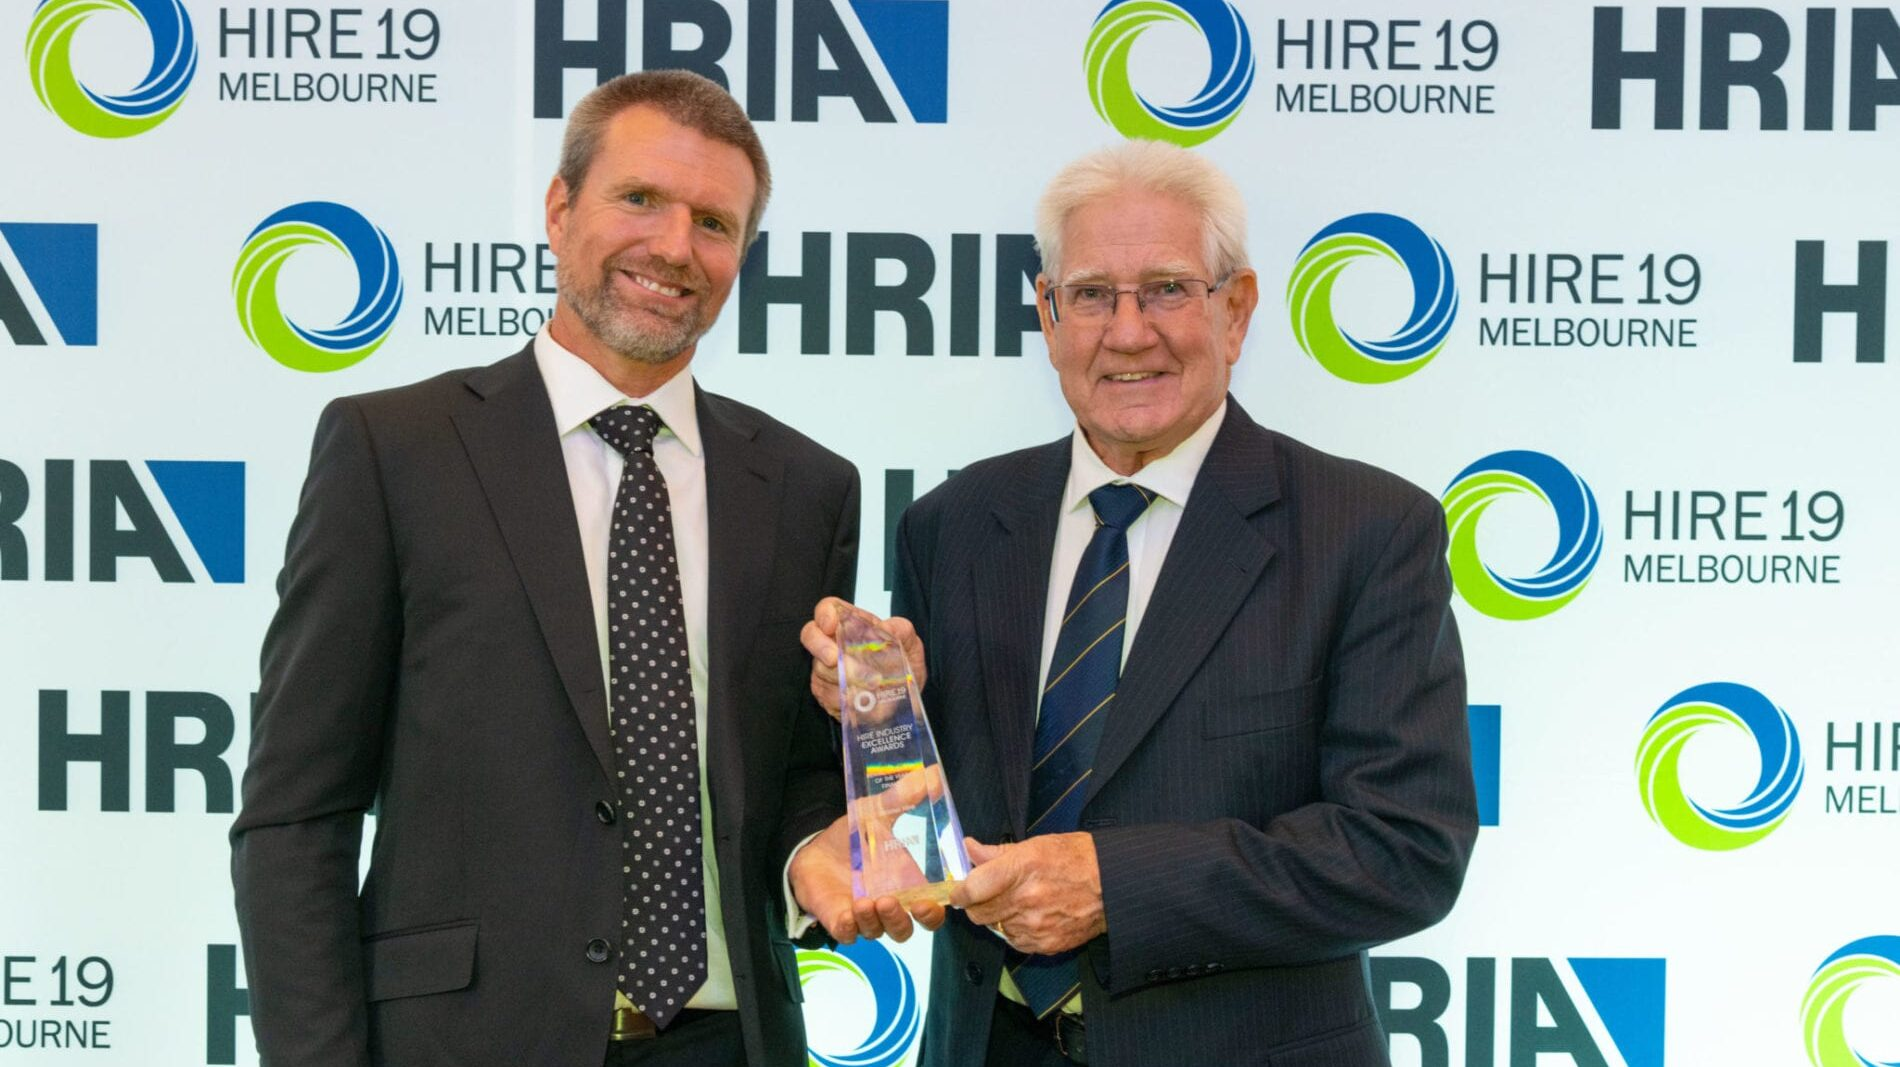 Scott and Peter Master Hire 2019 Rental Company of the Year